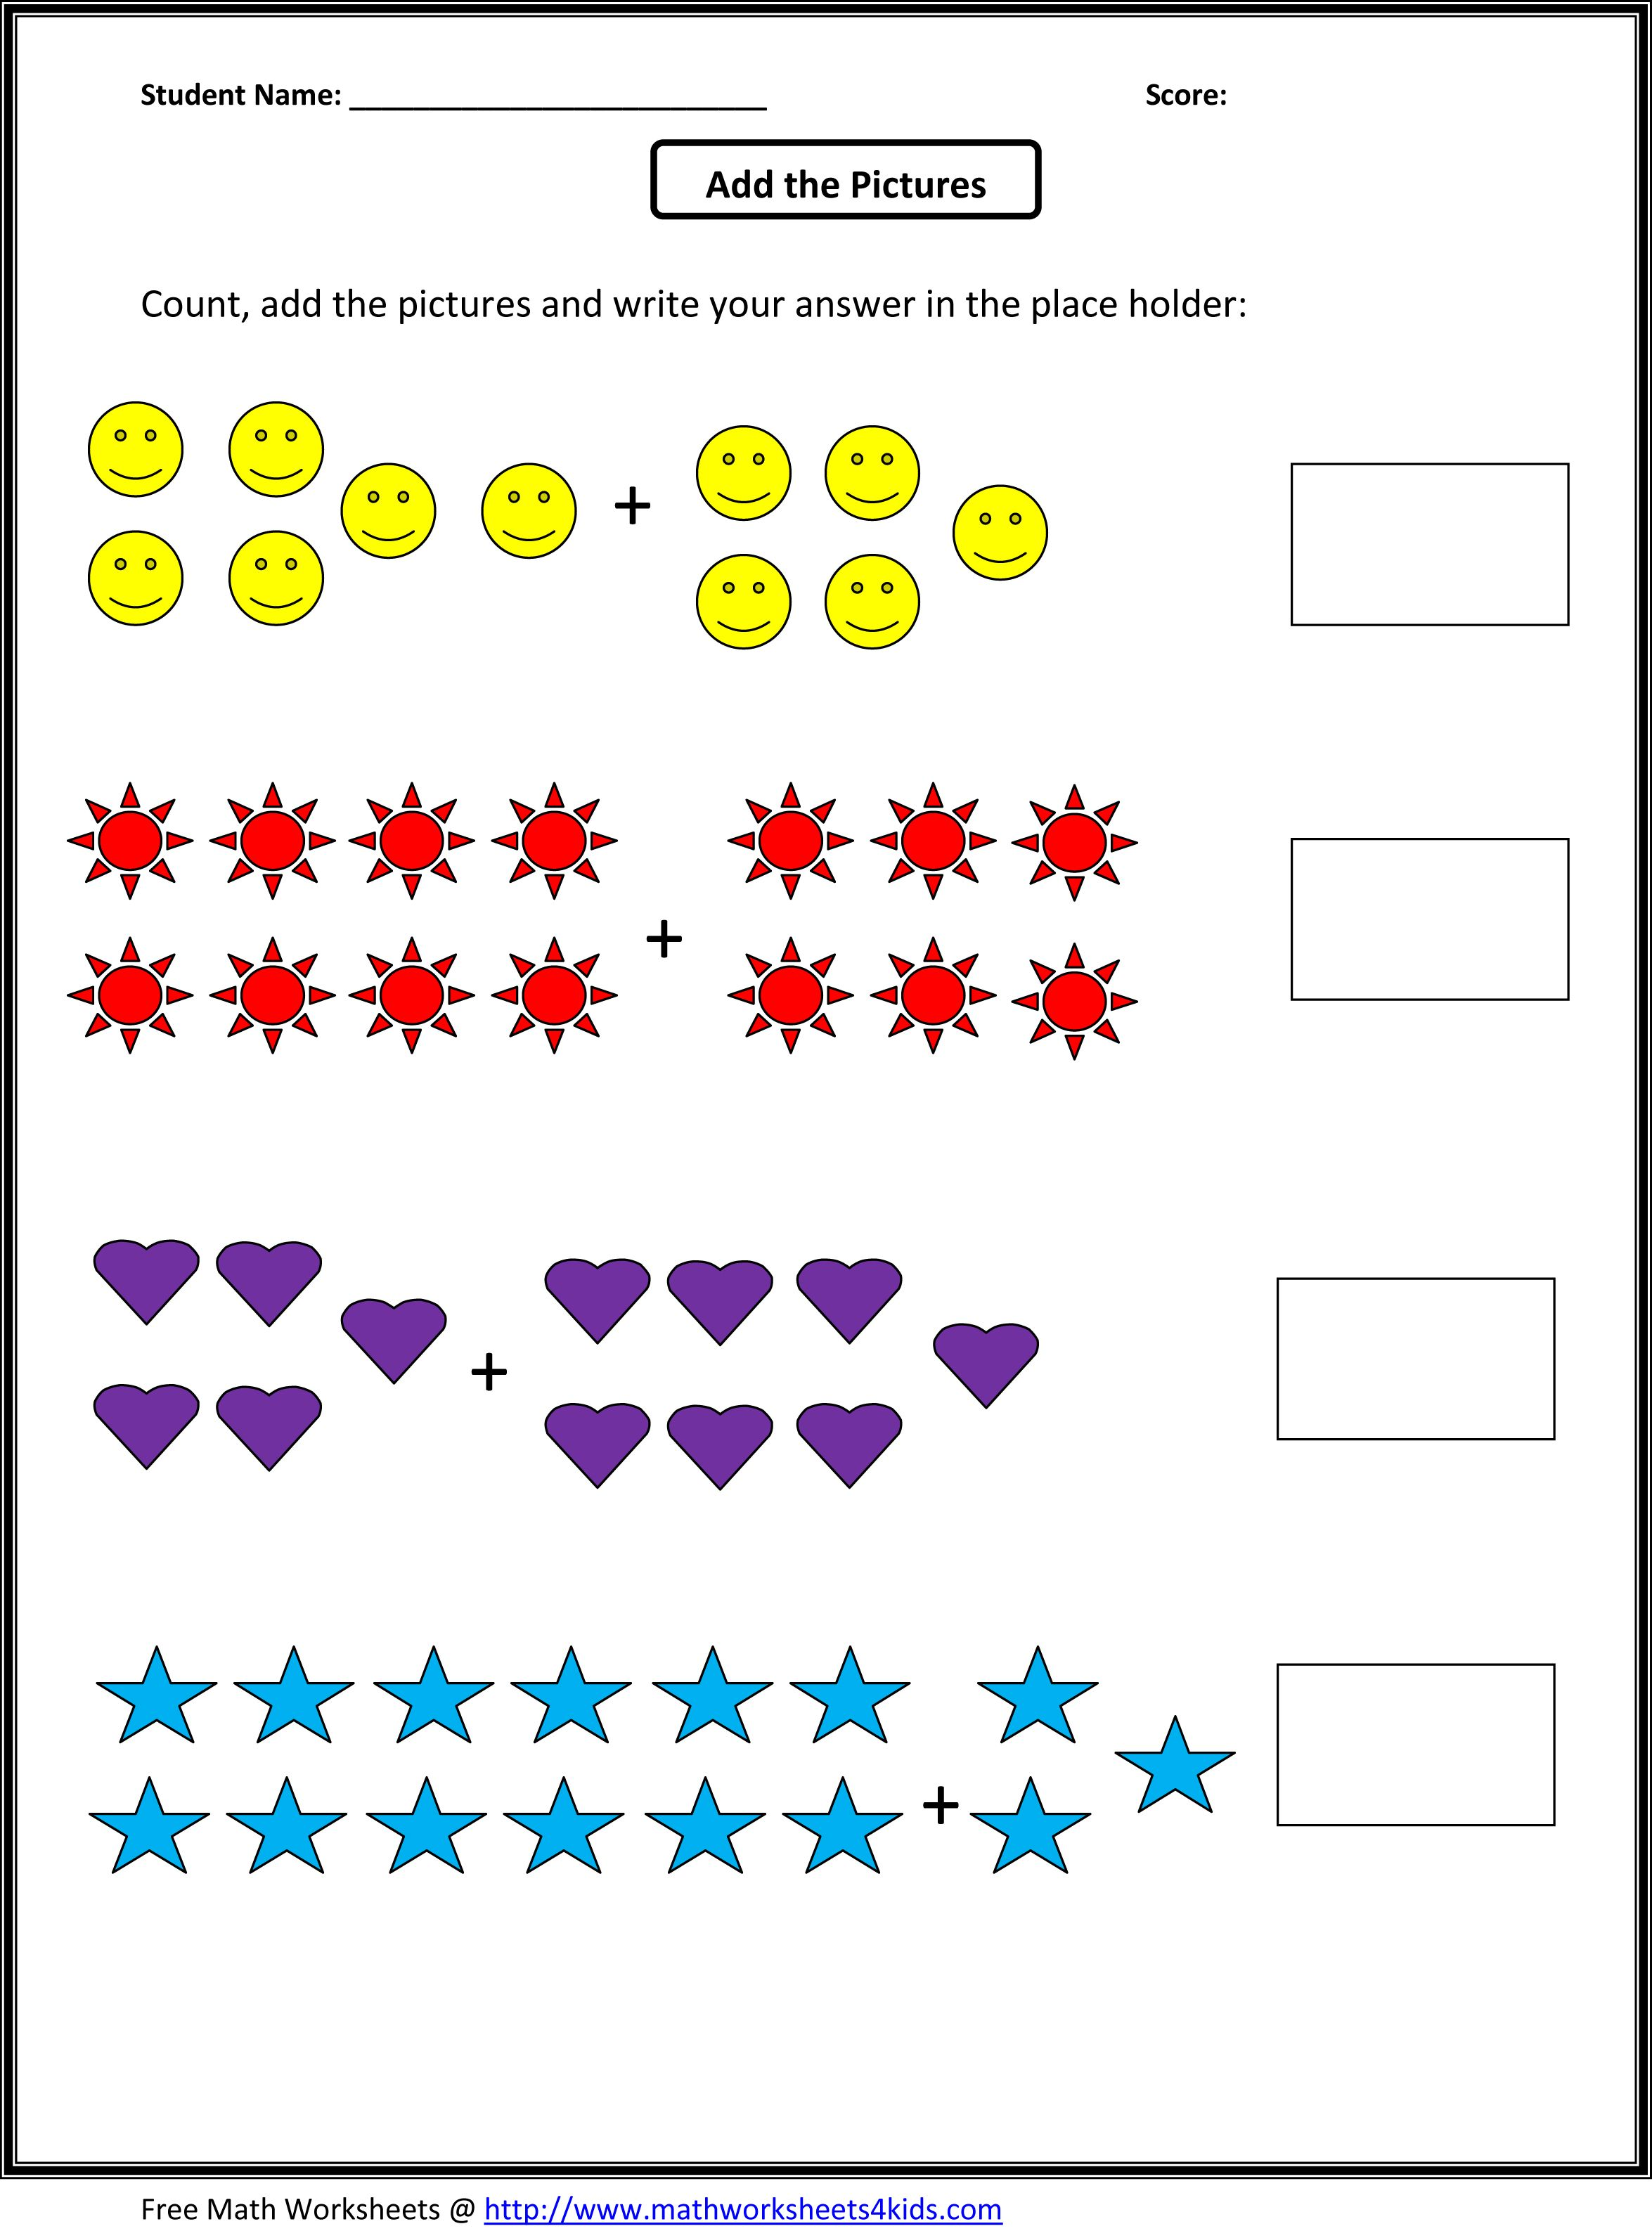 grade 1 addition math worksheets – Class 1 Maths Worksheets